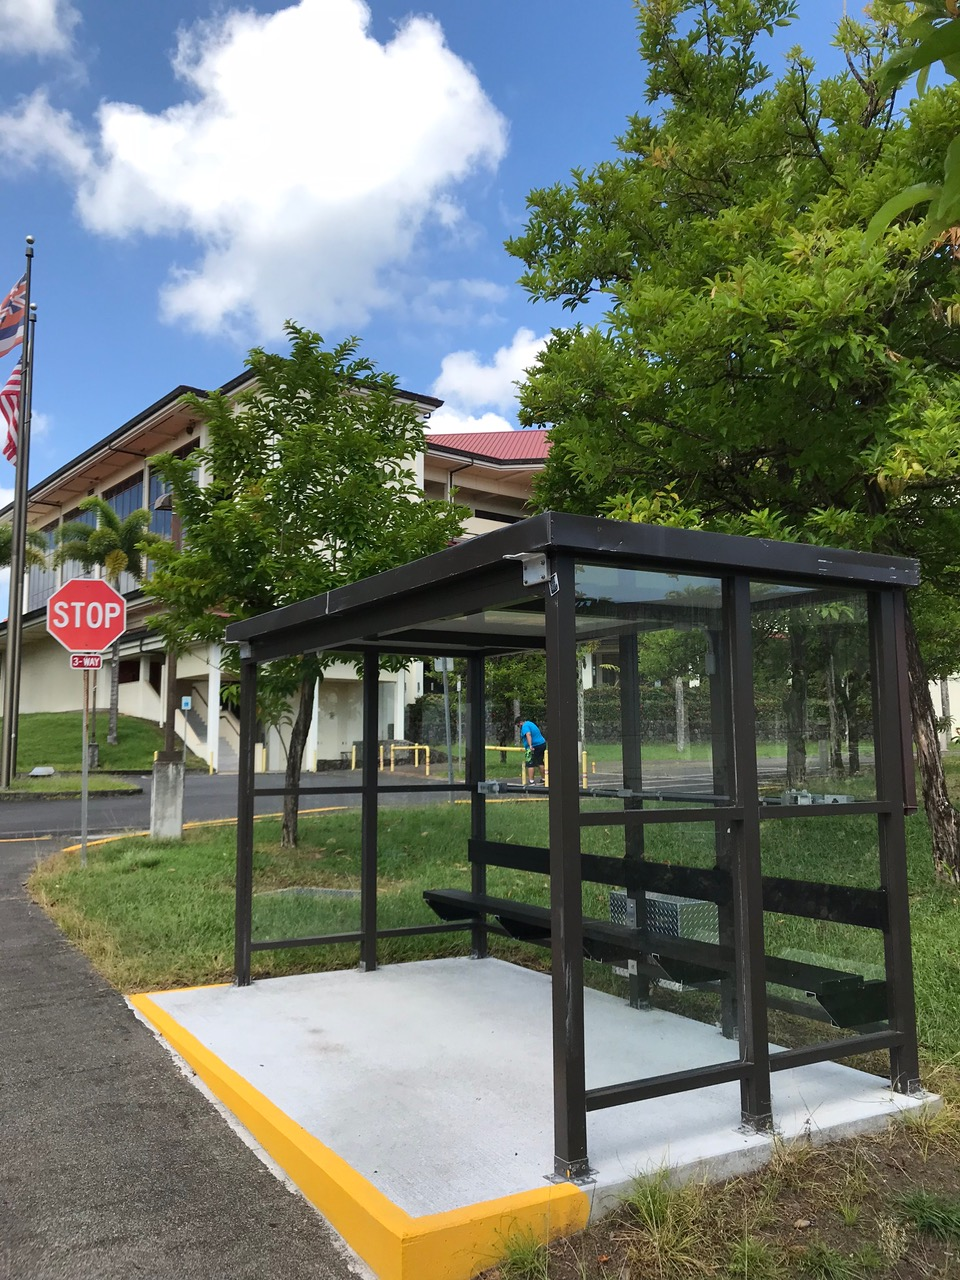 Glass enclosed shelter with benches.